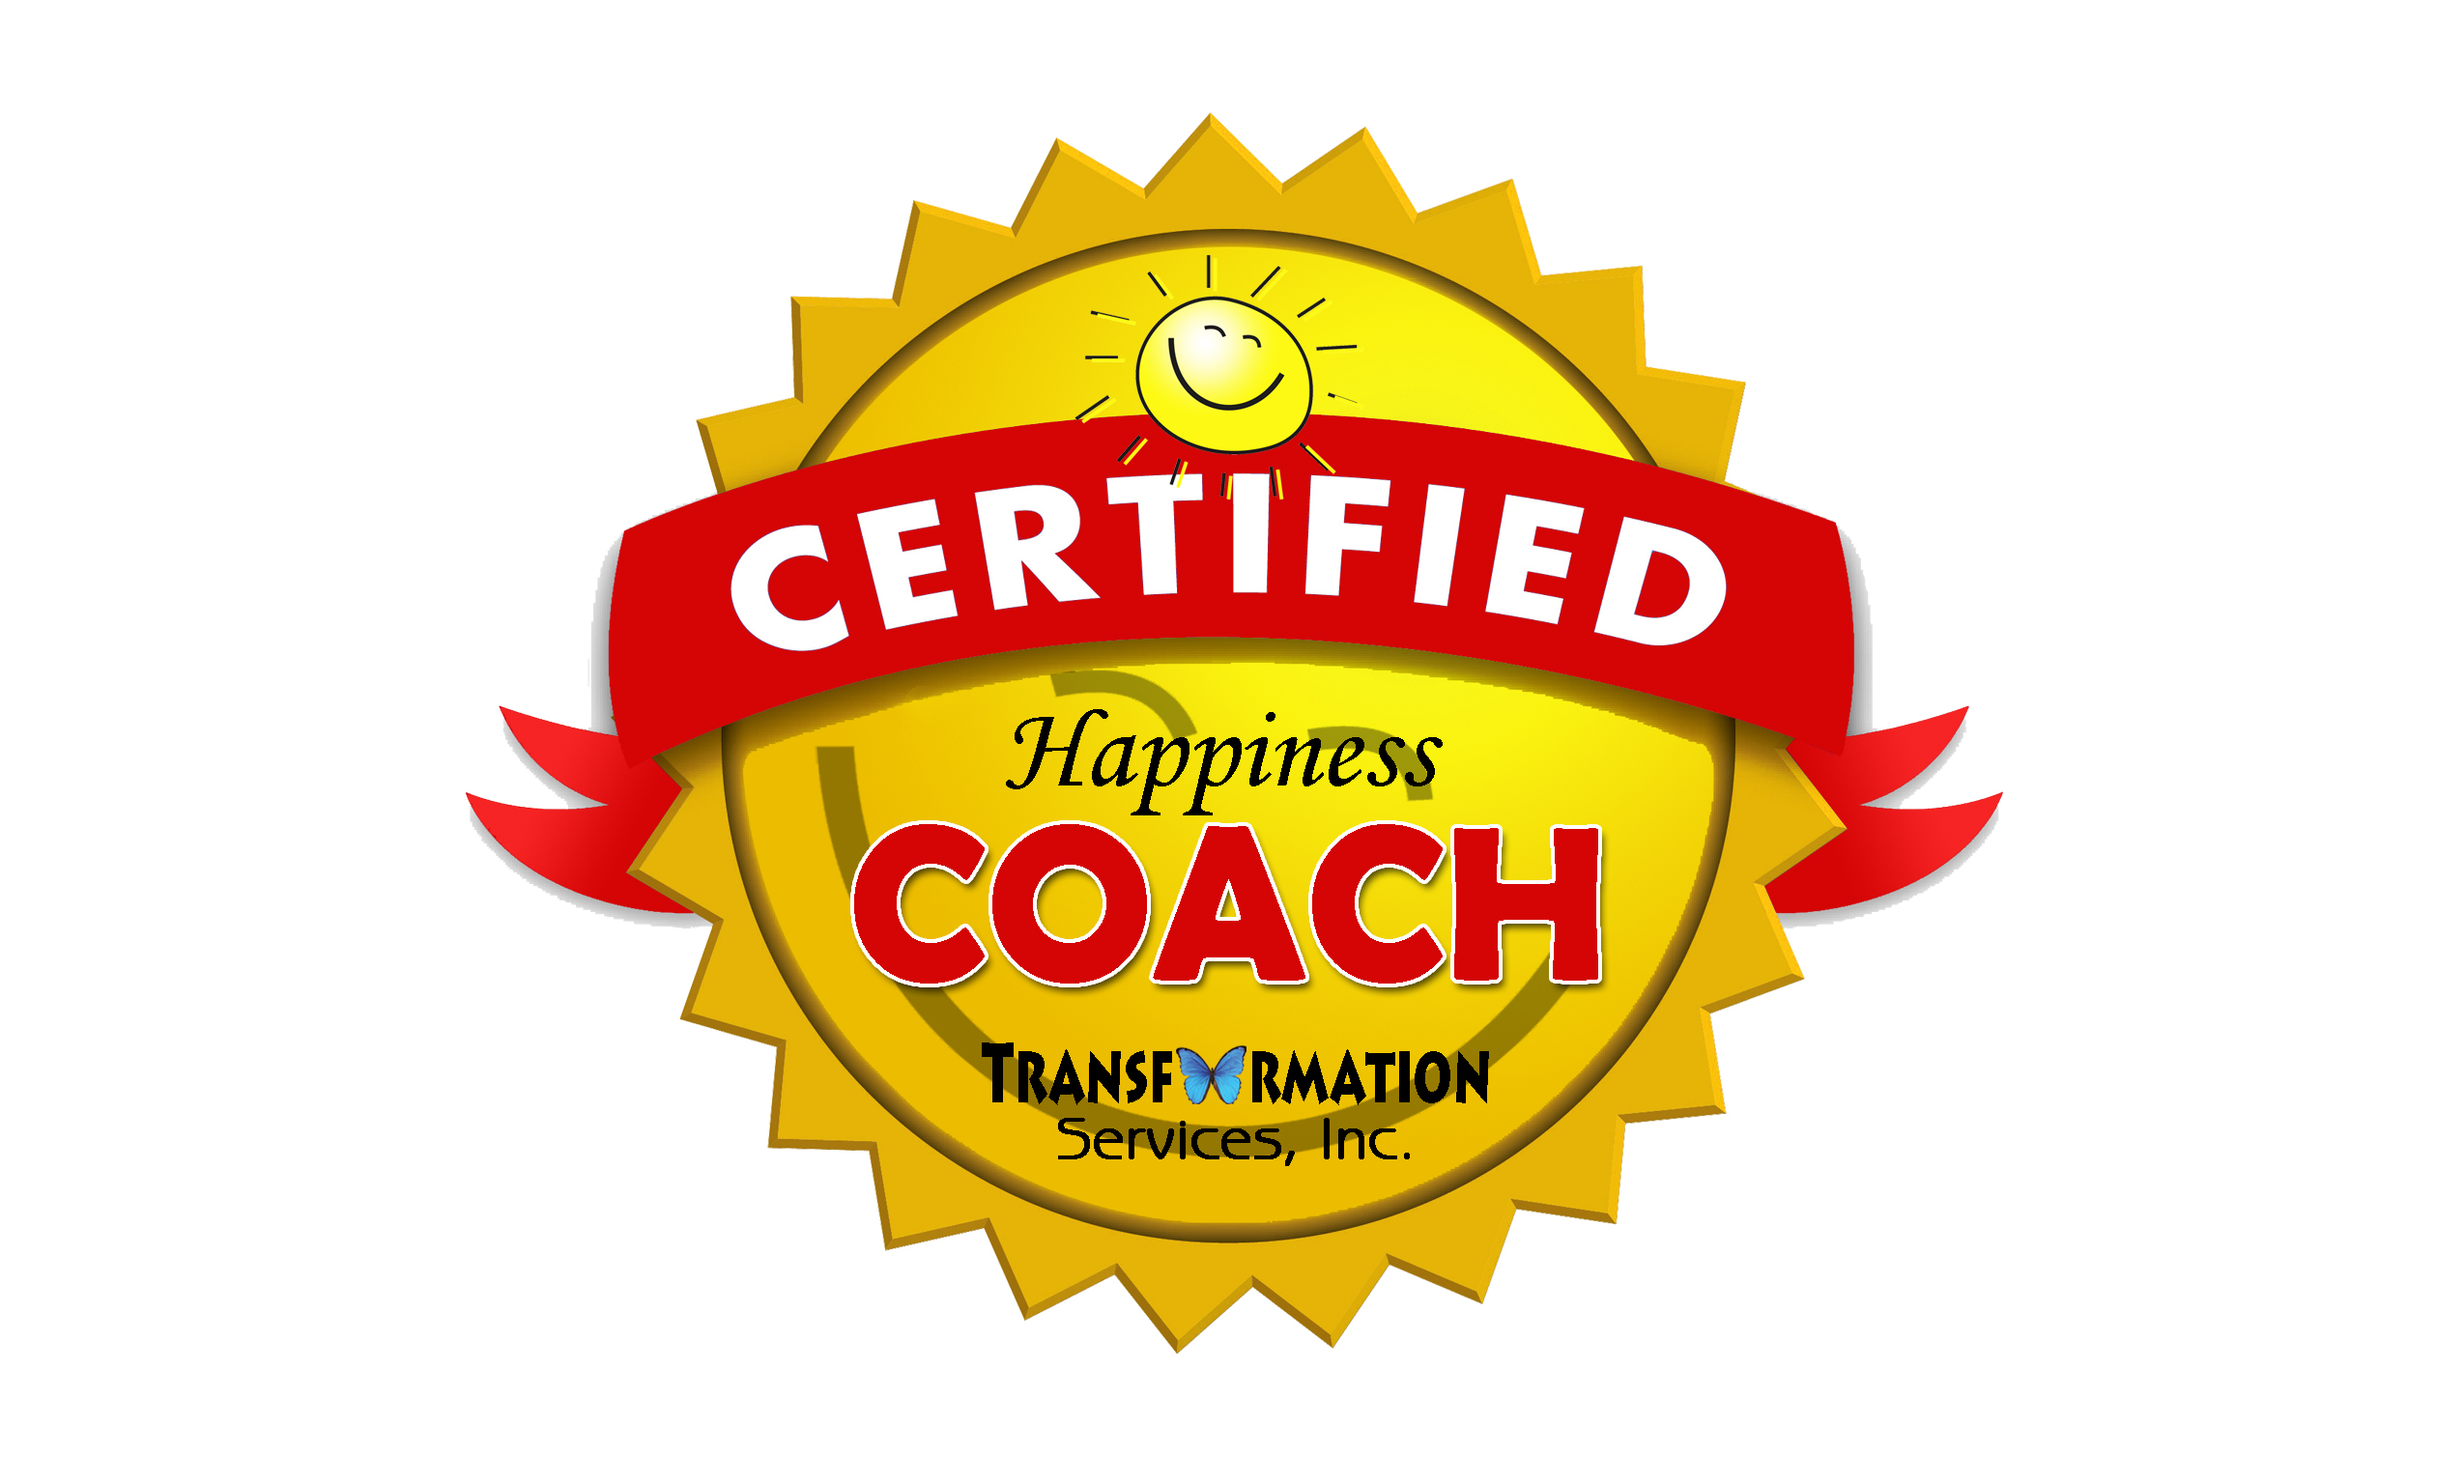 Happiness Life Coach Certification